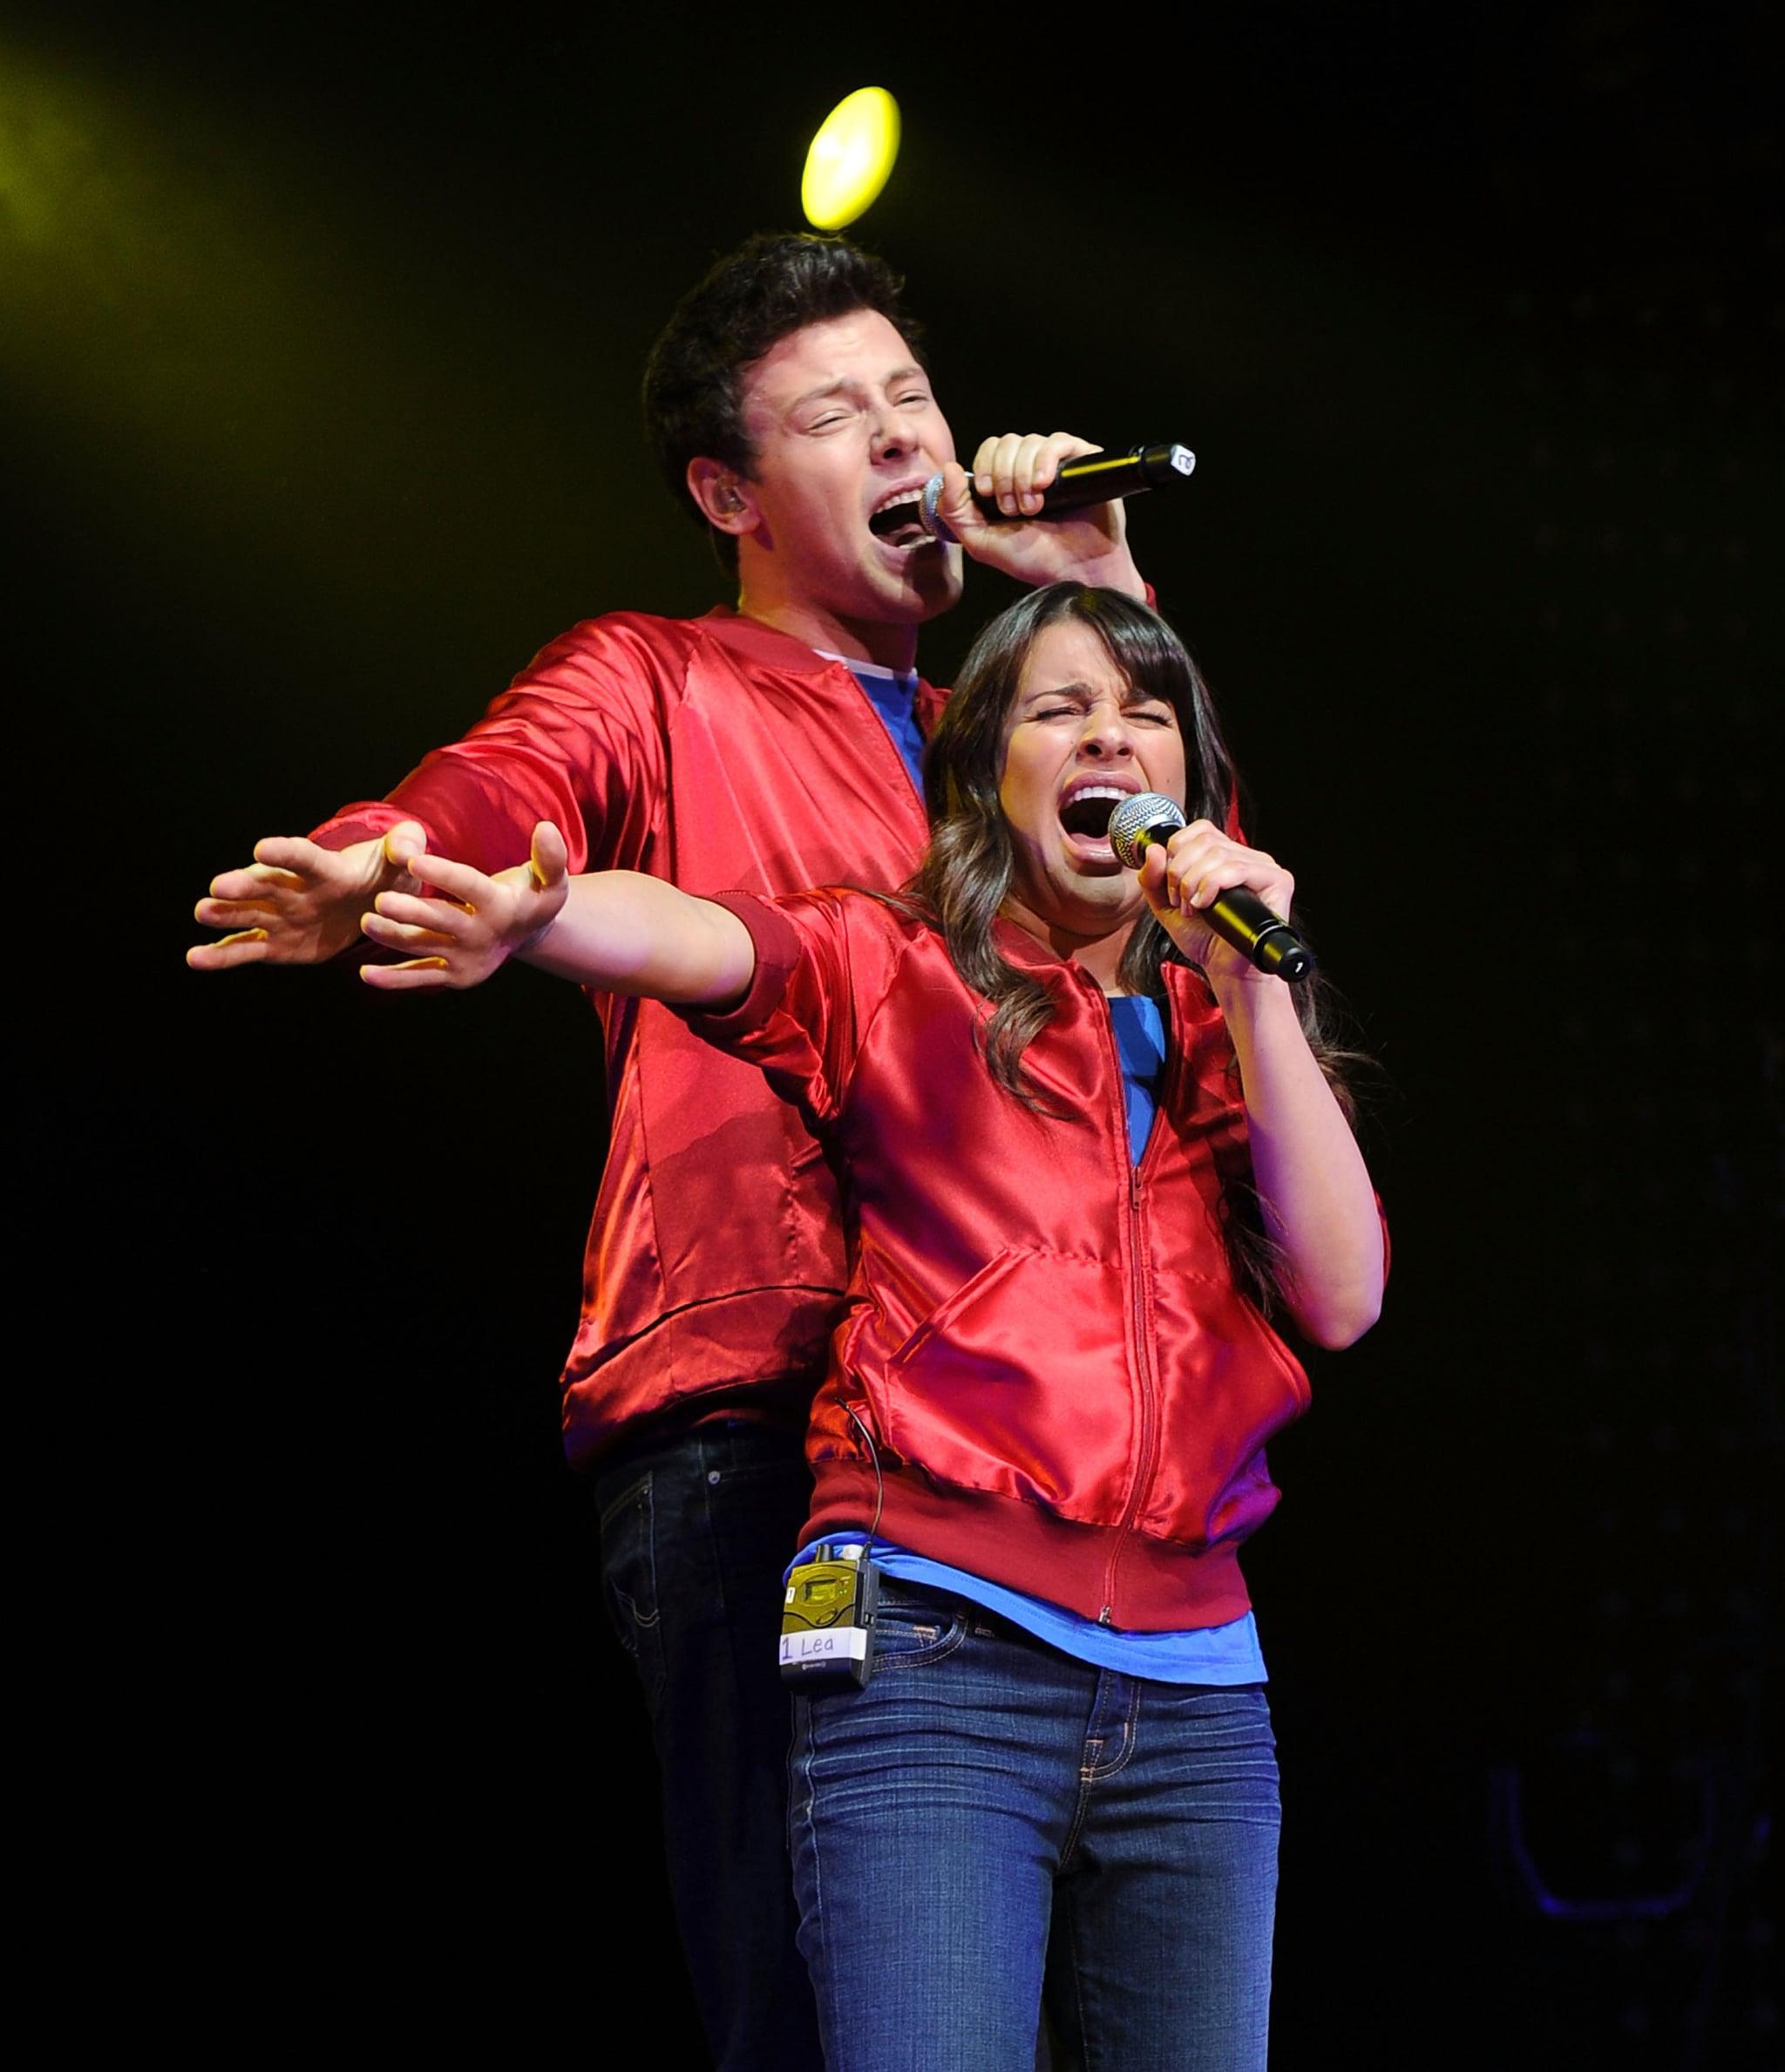 Cory Monteith performed with Lea Michele at an NYC concert event in May 2010.